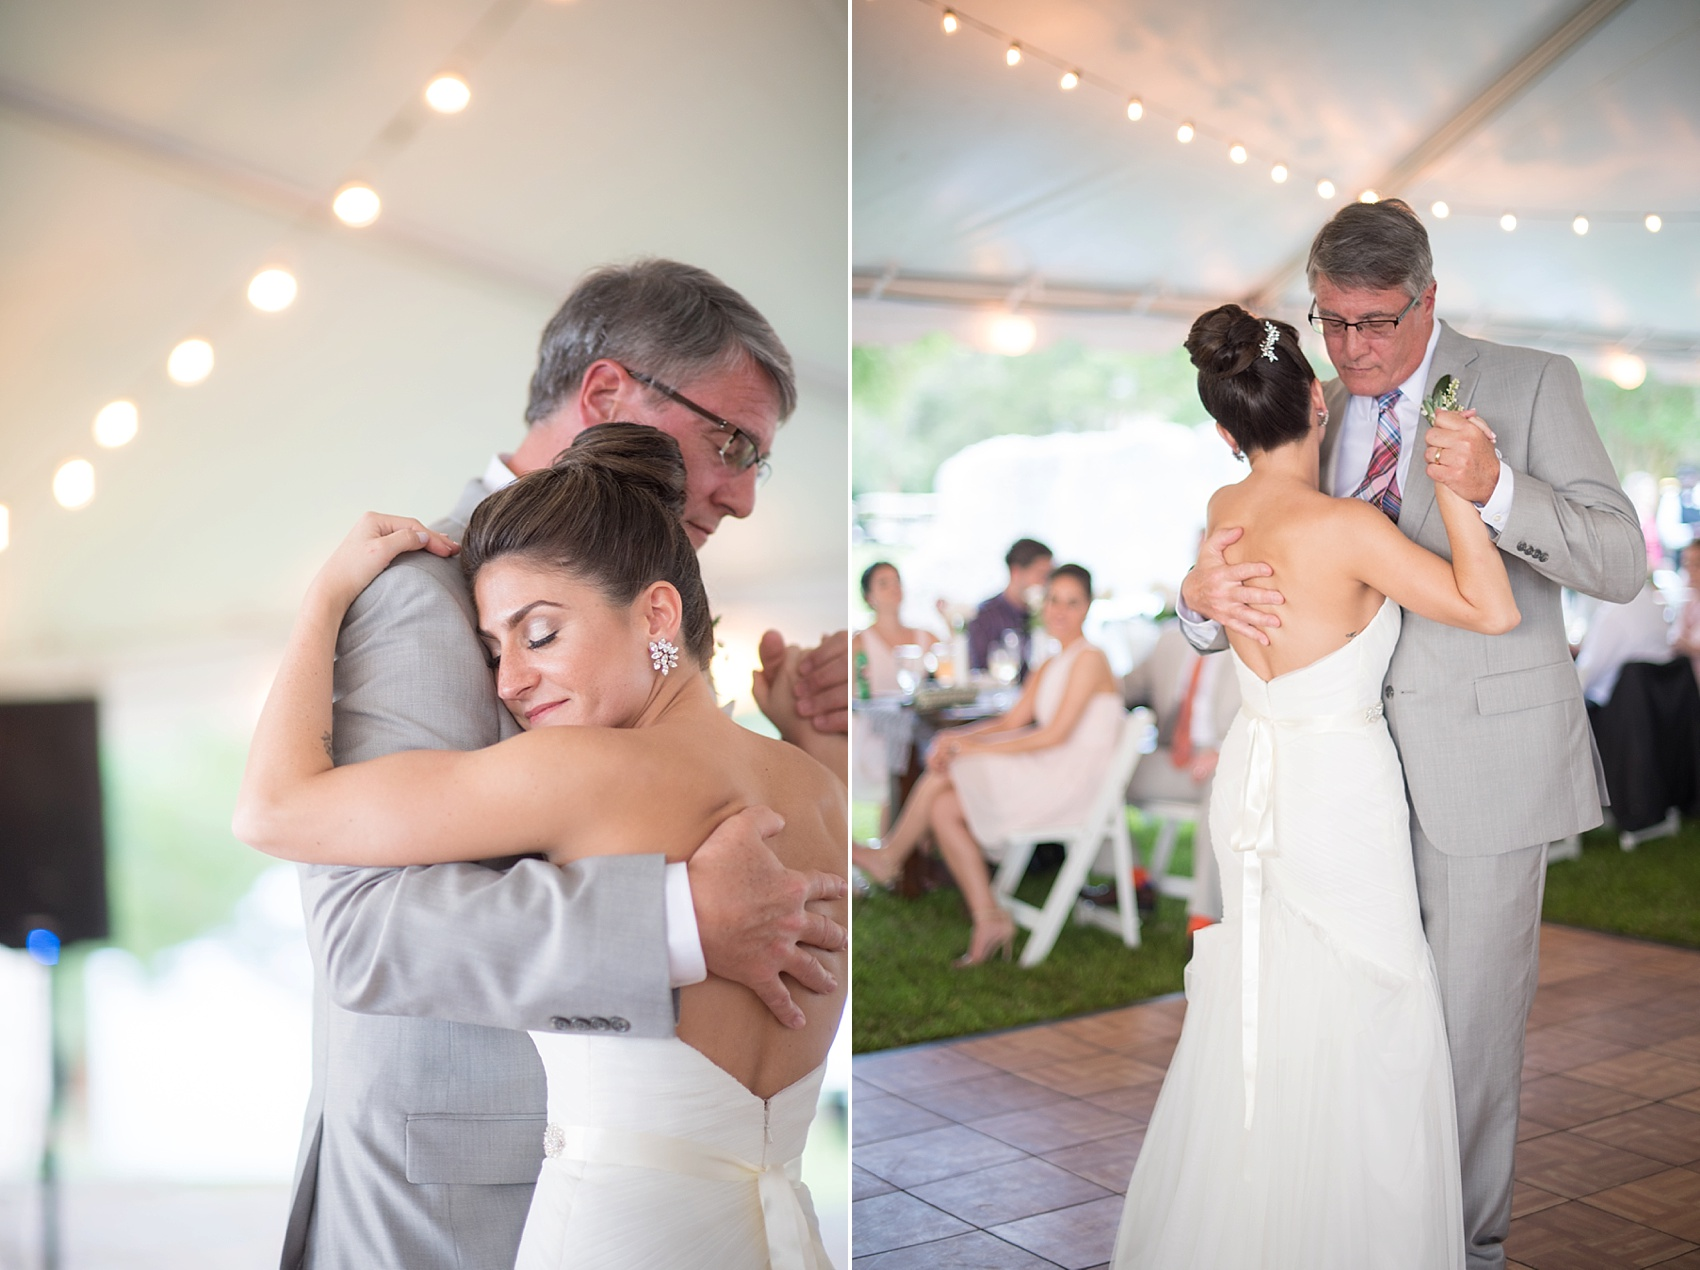 Father-daughter dance at a wedding at Haig Point in South Carolina, off the coast of Hilton Head. Photos by Mikkel Paige Photography.